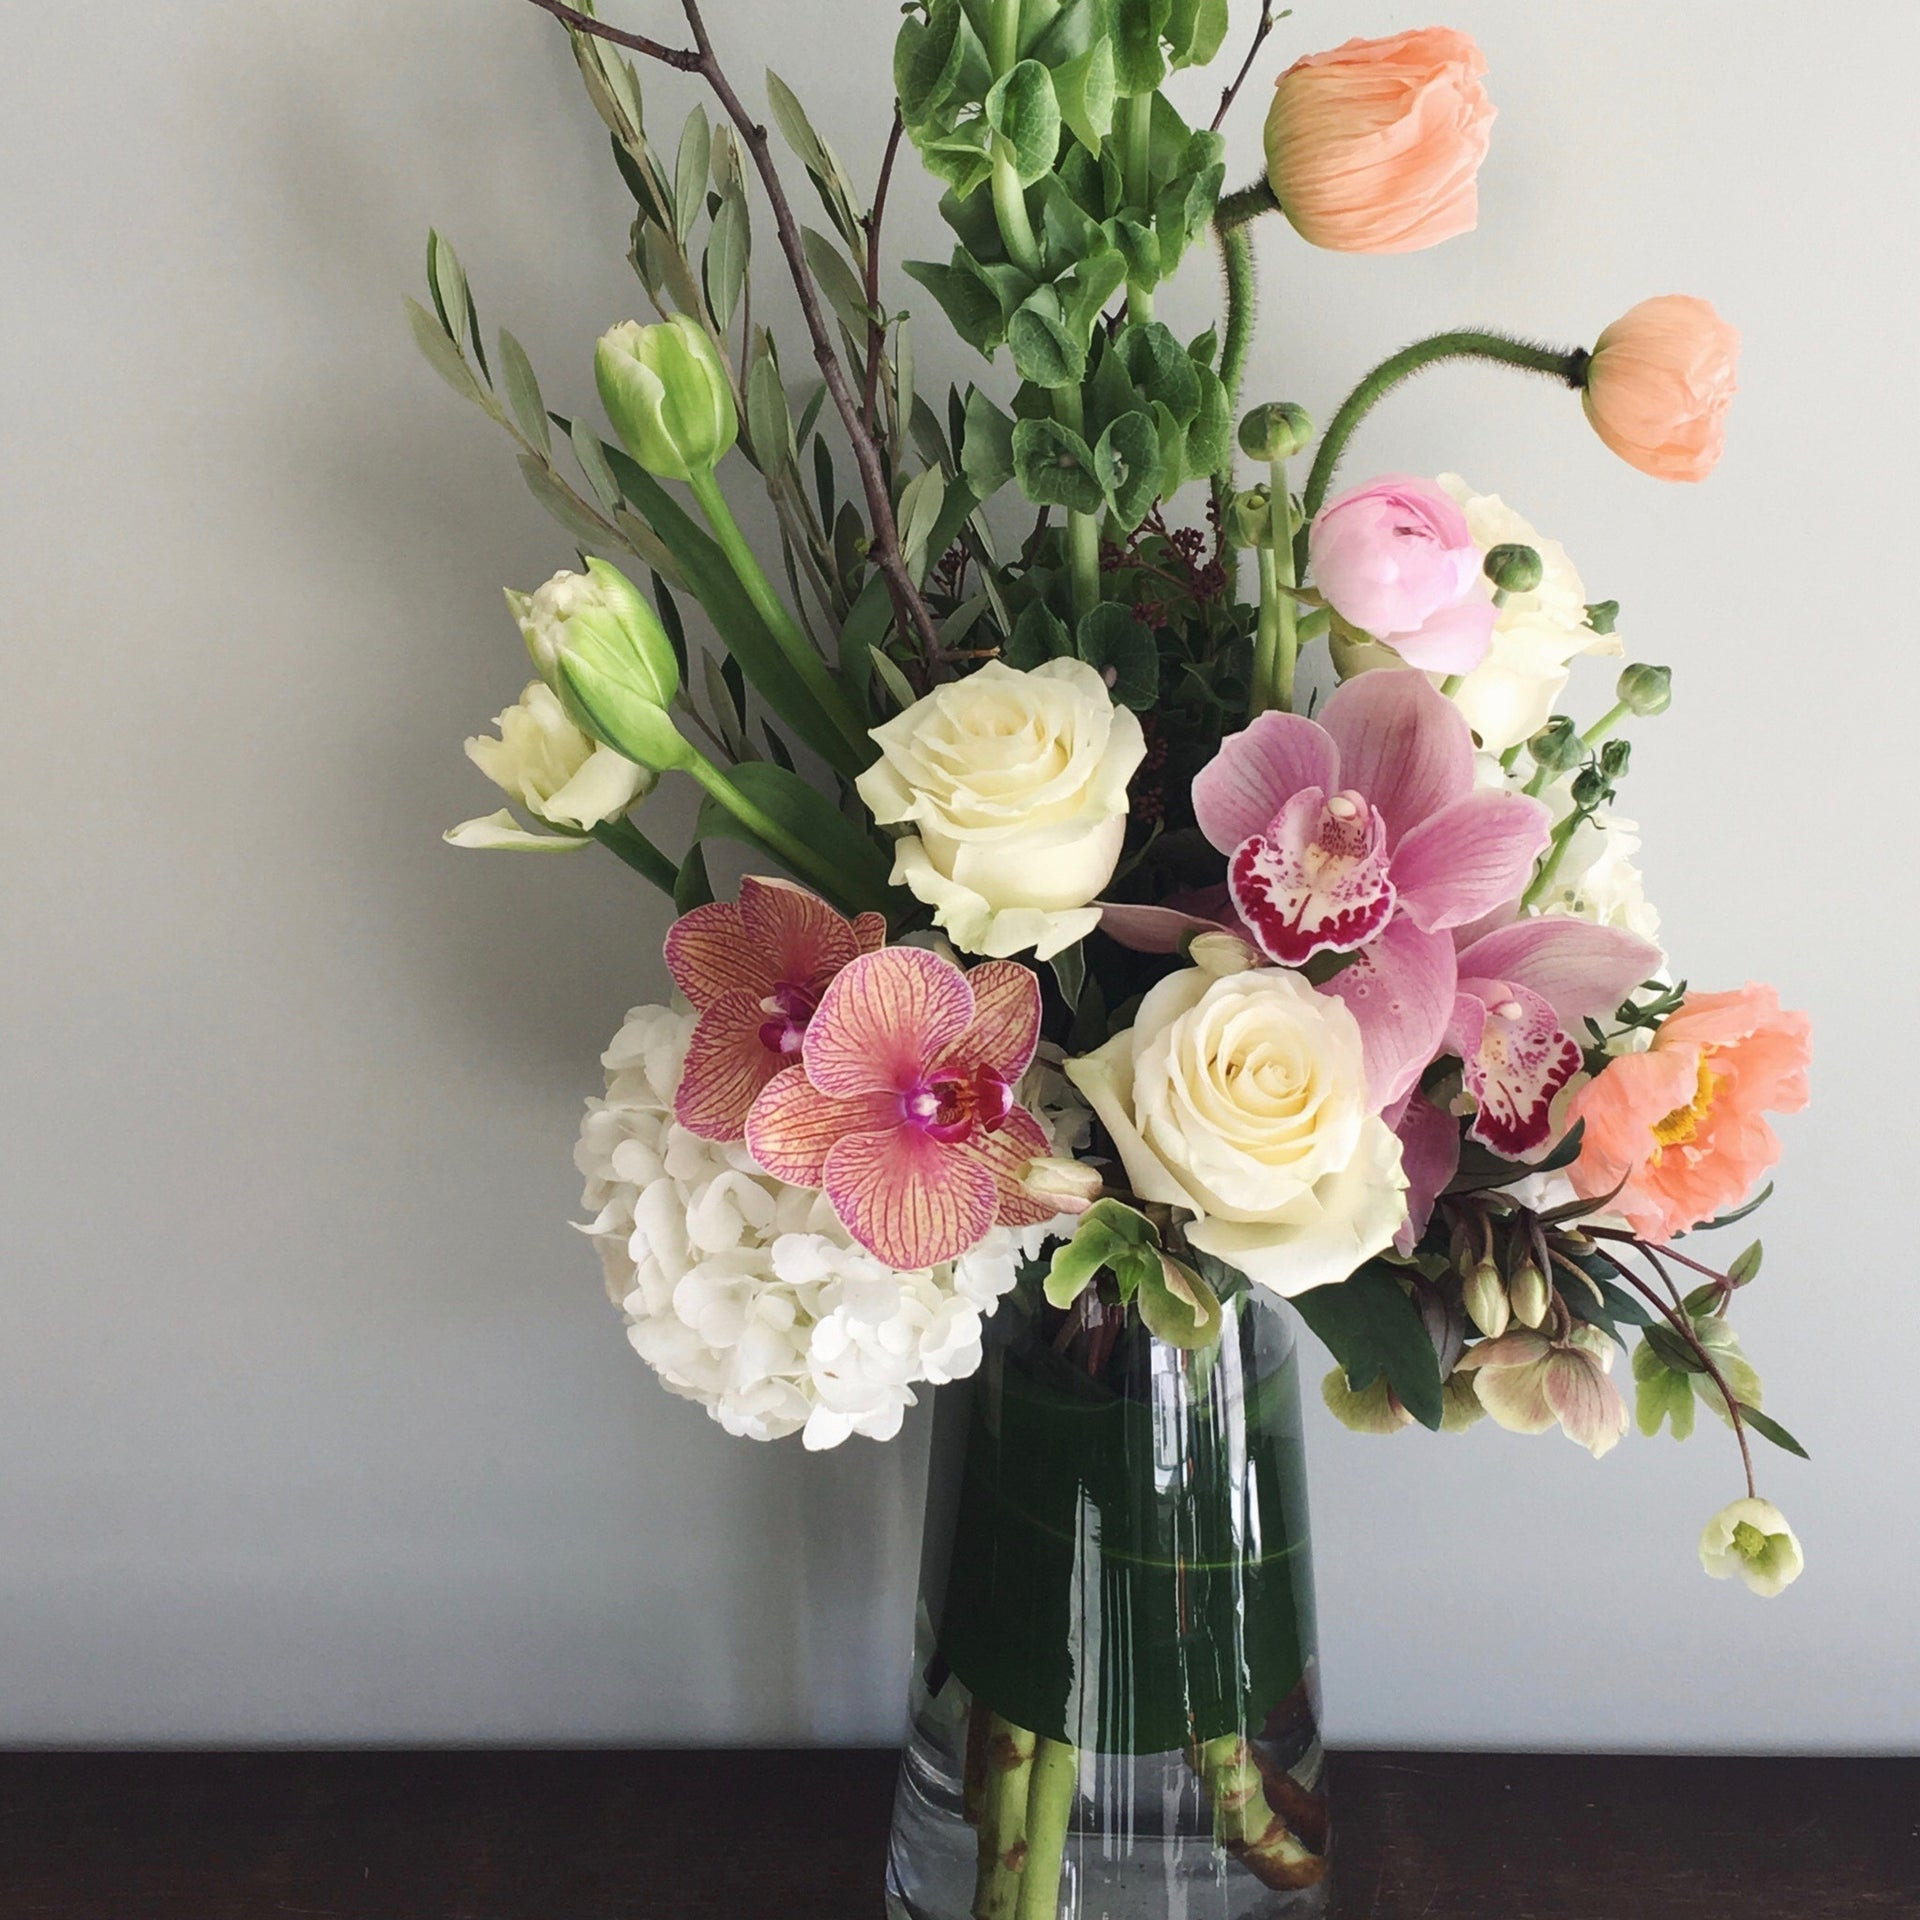 Large arrangement of flowers in white, peach, and pink in a glass vase.